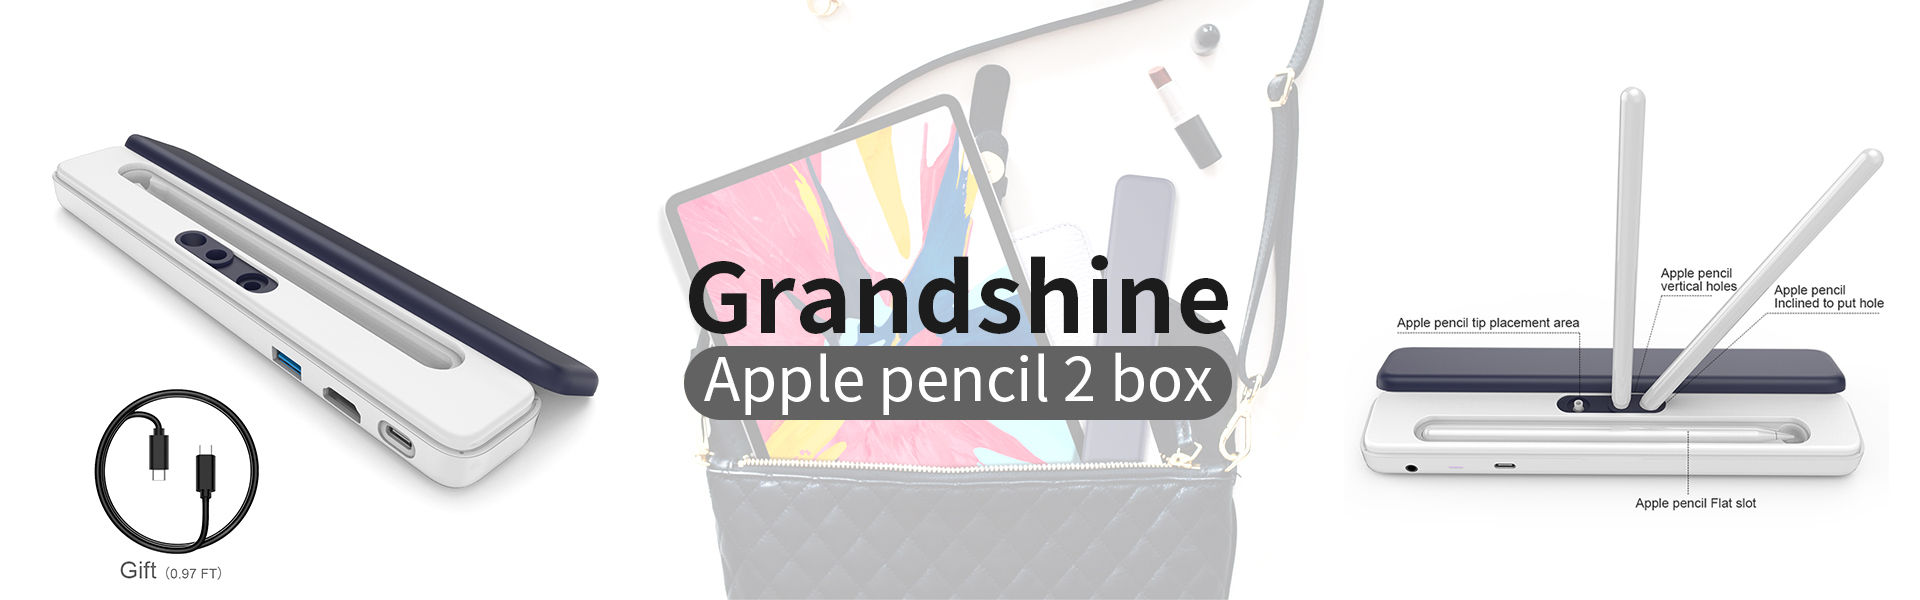 Apple pencil 2 storage box